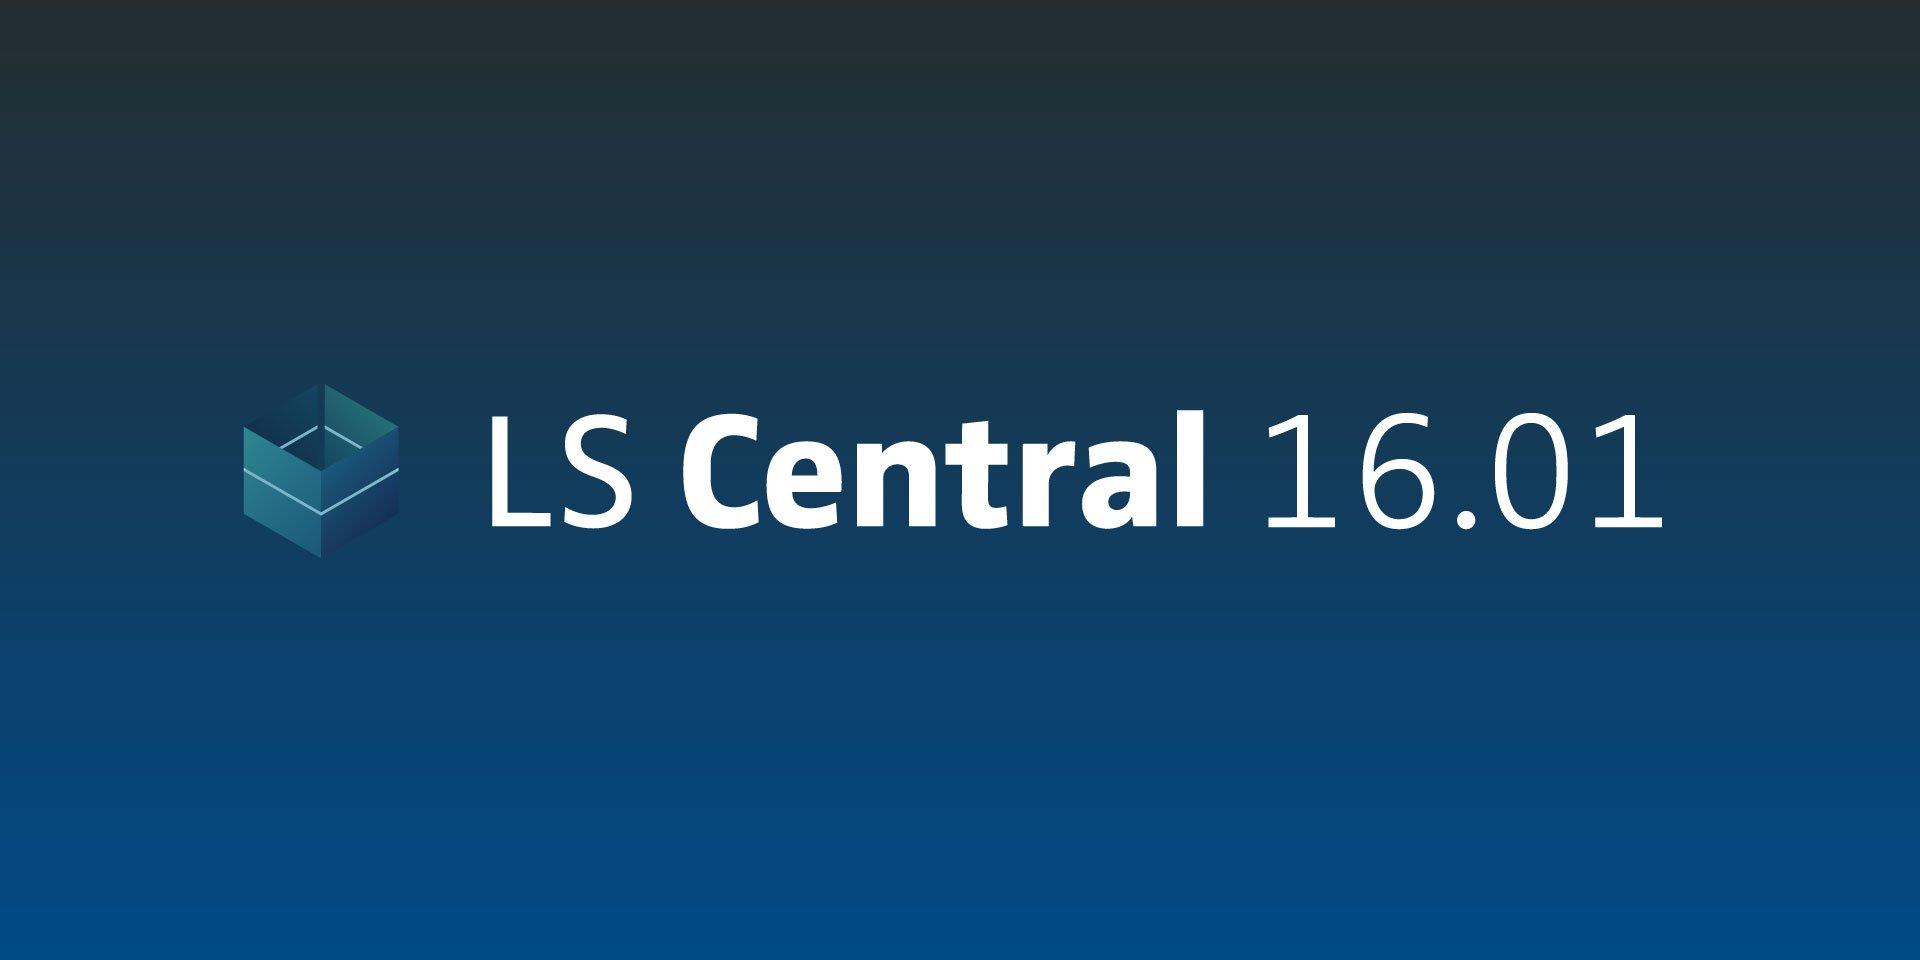 LS Central 16.1: Easier upgrades with Go Current, enhanced lifecycle planning, more restaurant table booking options